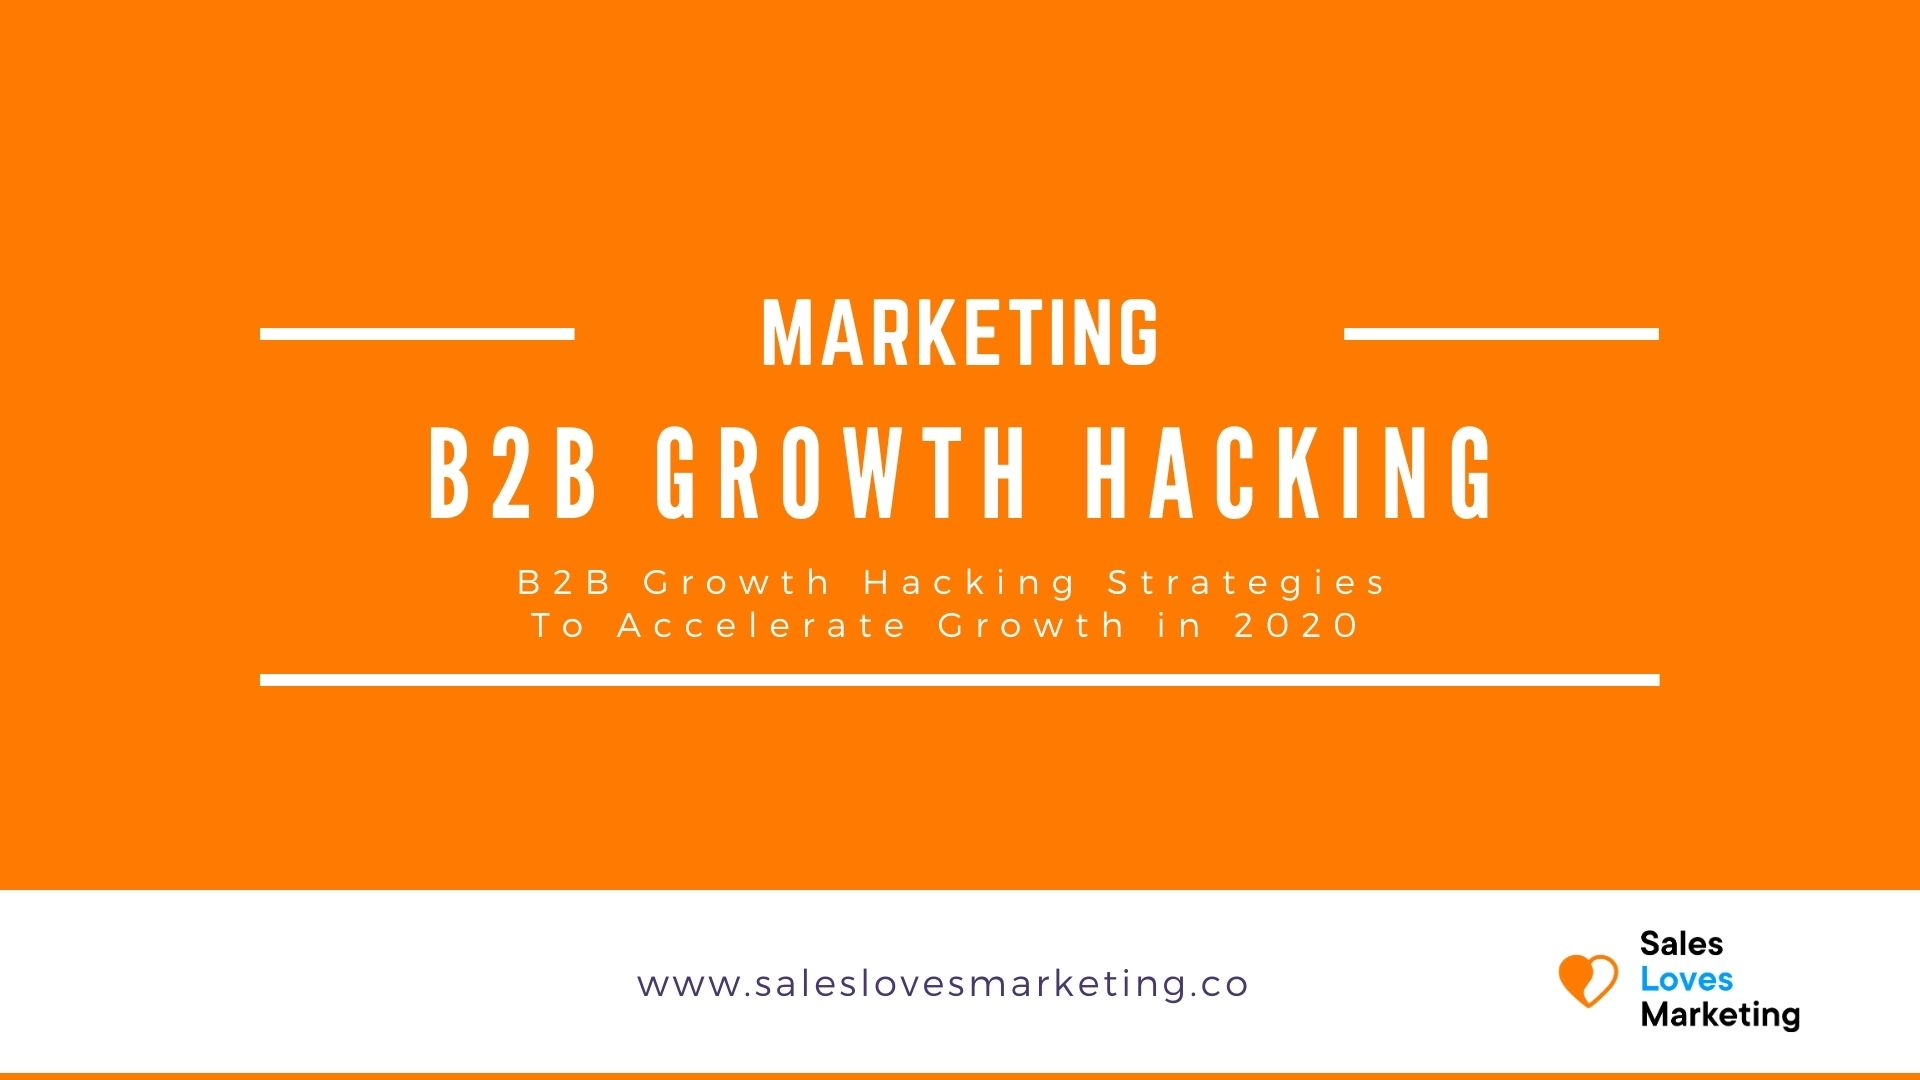 B2B growth Hacking strategies to acquire new customers